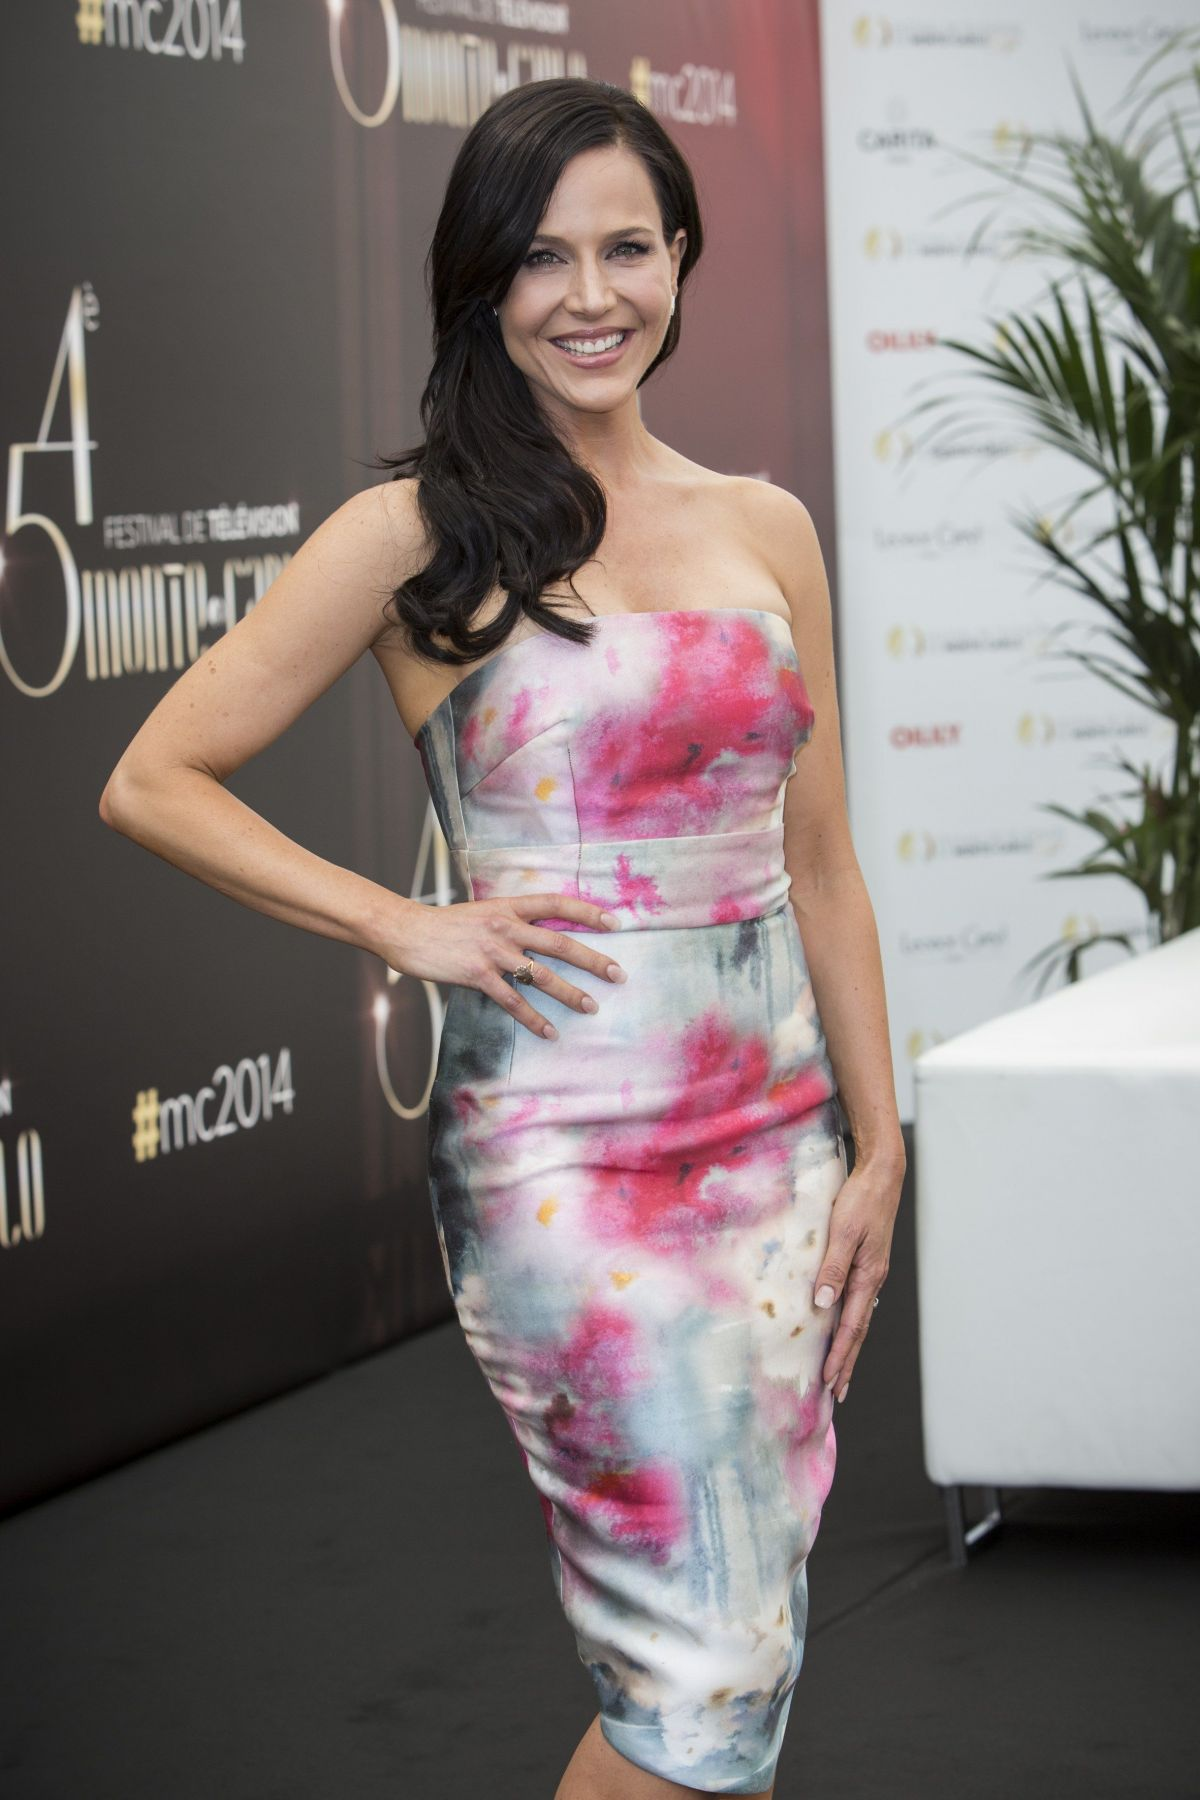 JULIE BENZ at 2014 Monte Carlo TV Festival Photocall